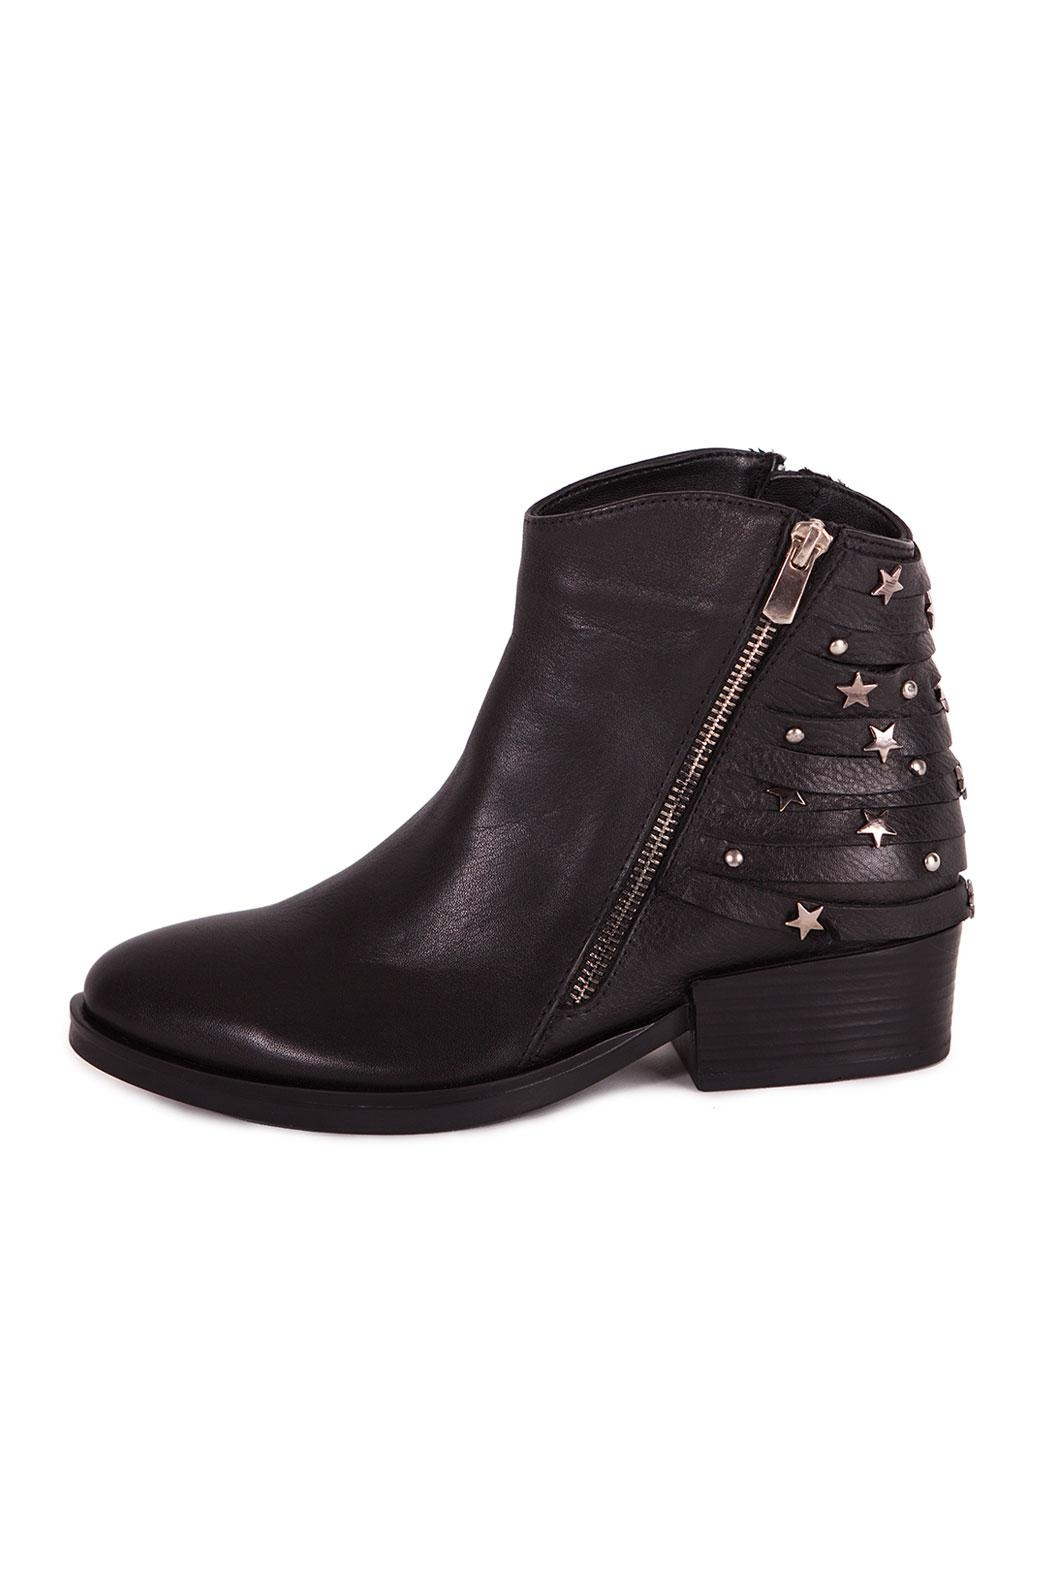 Pixy Milano Black Leather Booties - Front Full Image